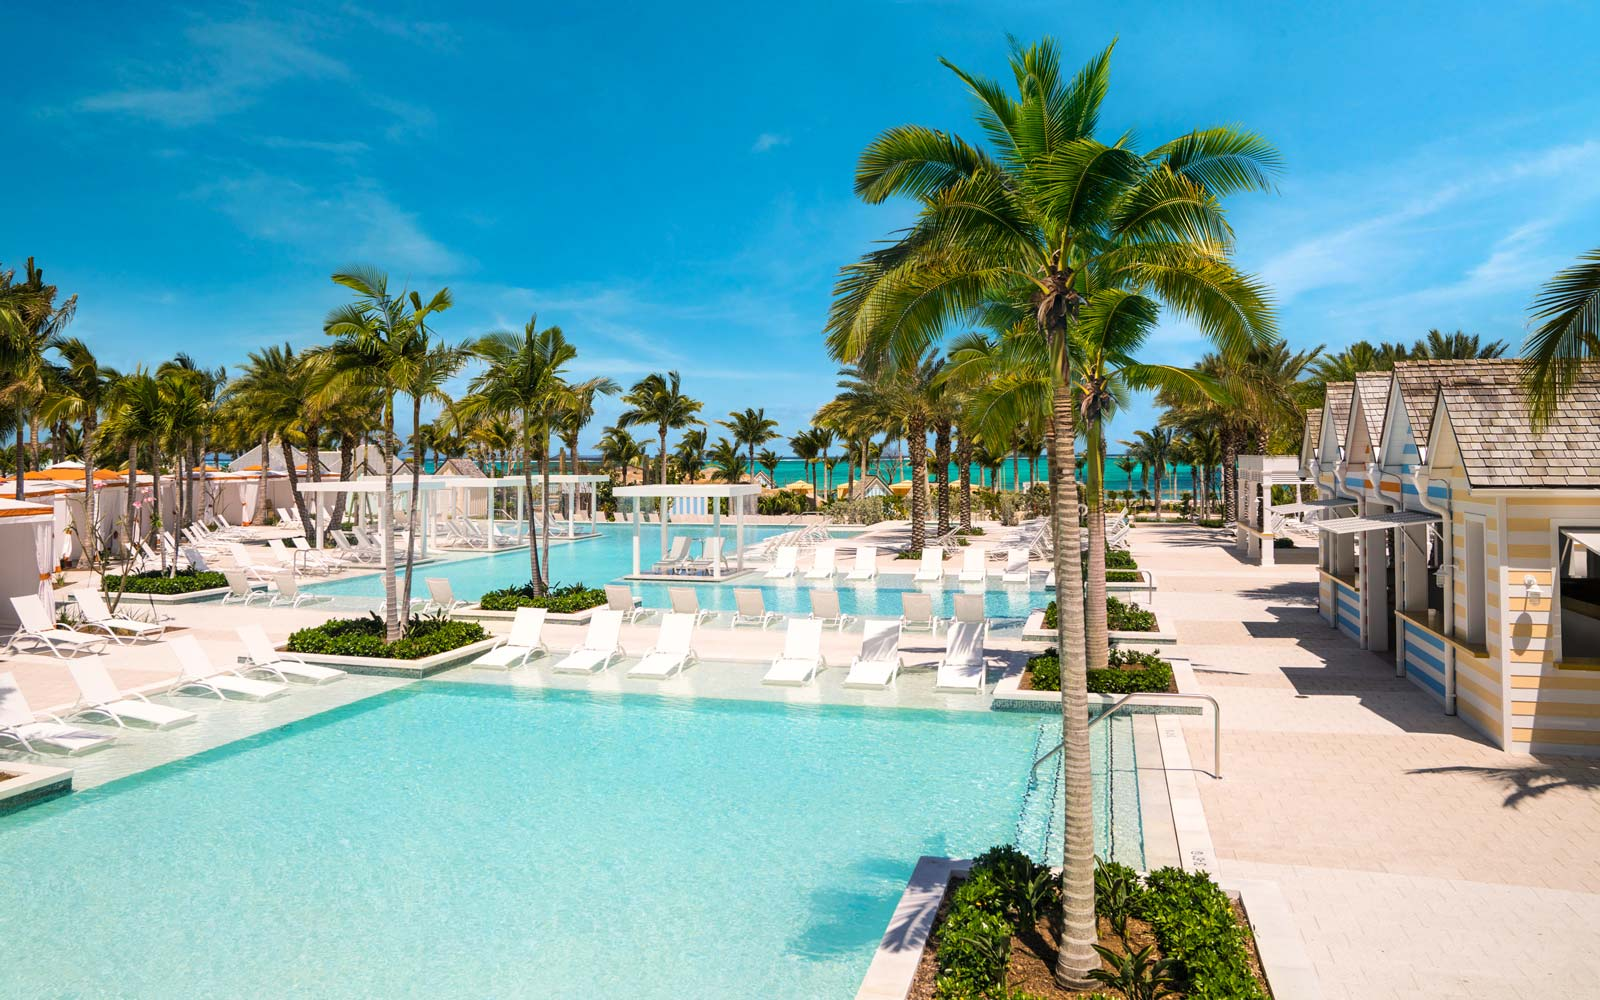 The Pool at the Grand Hyatt, Baha Mar